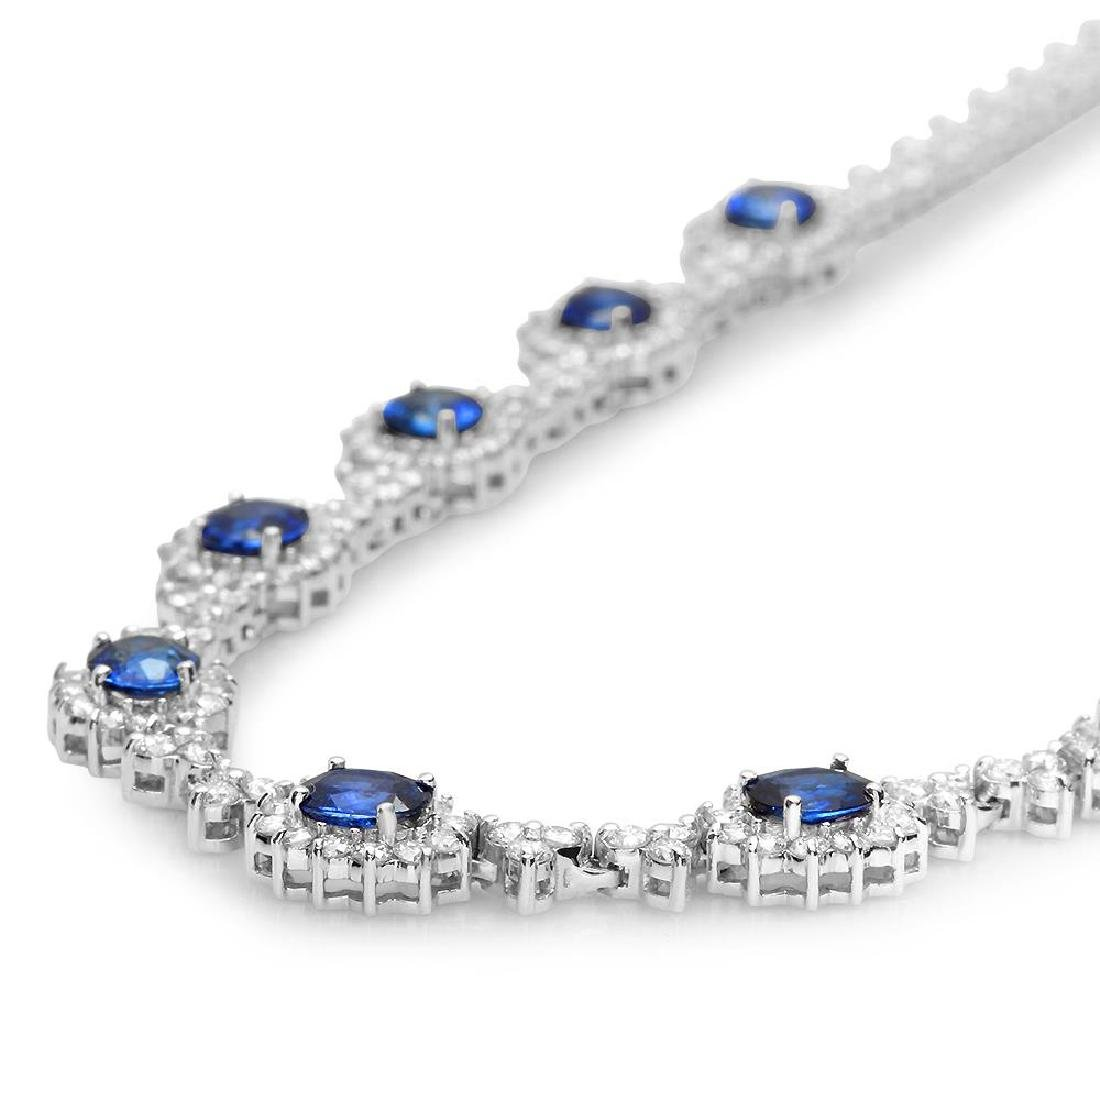 14K Gold 7.88ct Sapphire 8.79cts Diamond Necklace - 2